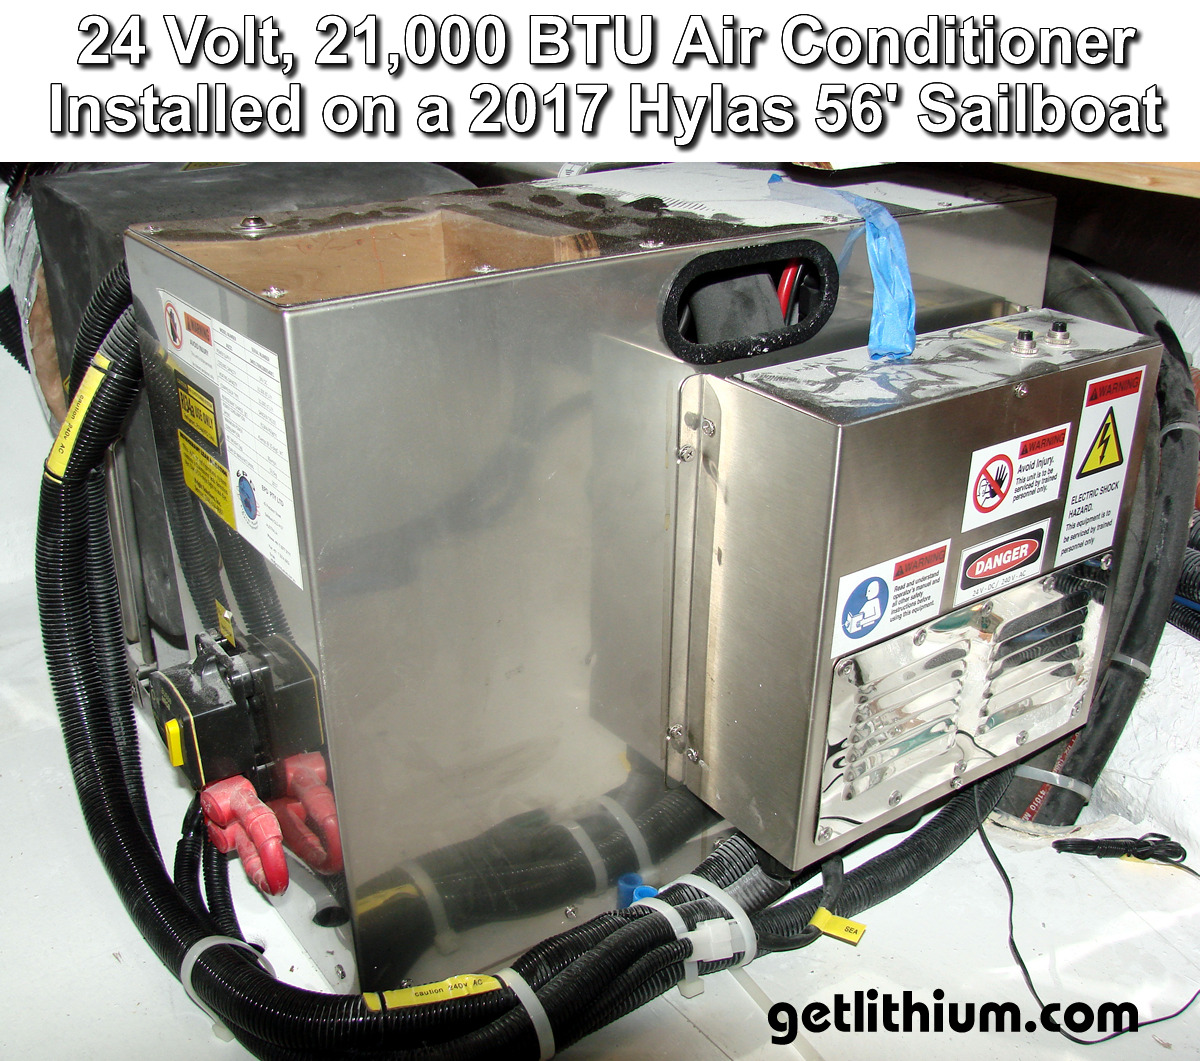 Contact getlithium com: 604-510-0800 for Sales and Information about